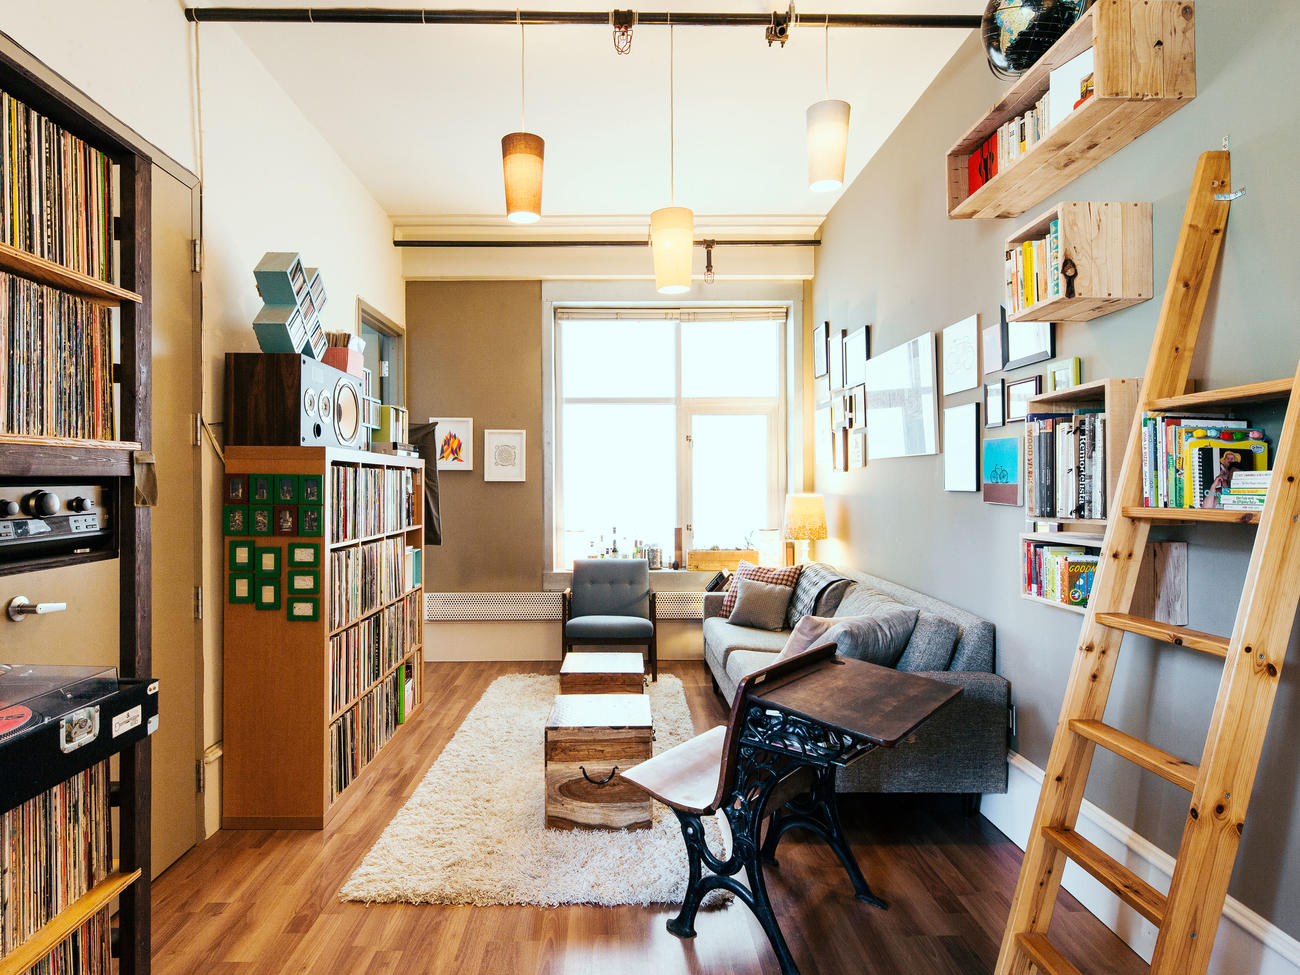 6 Space-Stretching Tricks for an Apartment